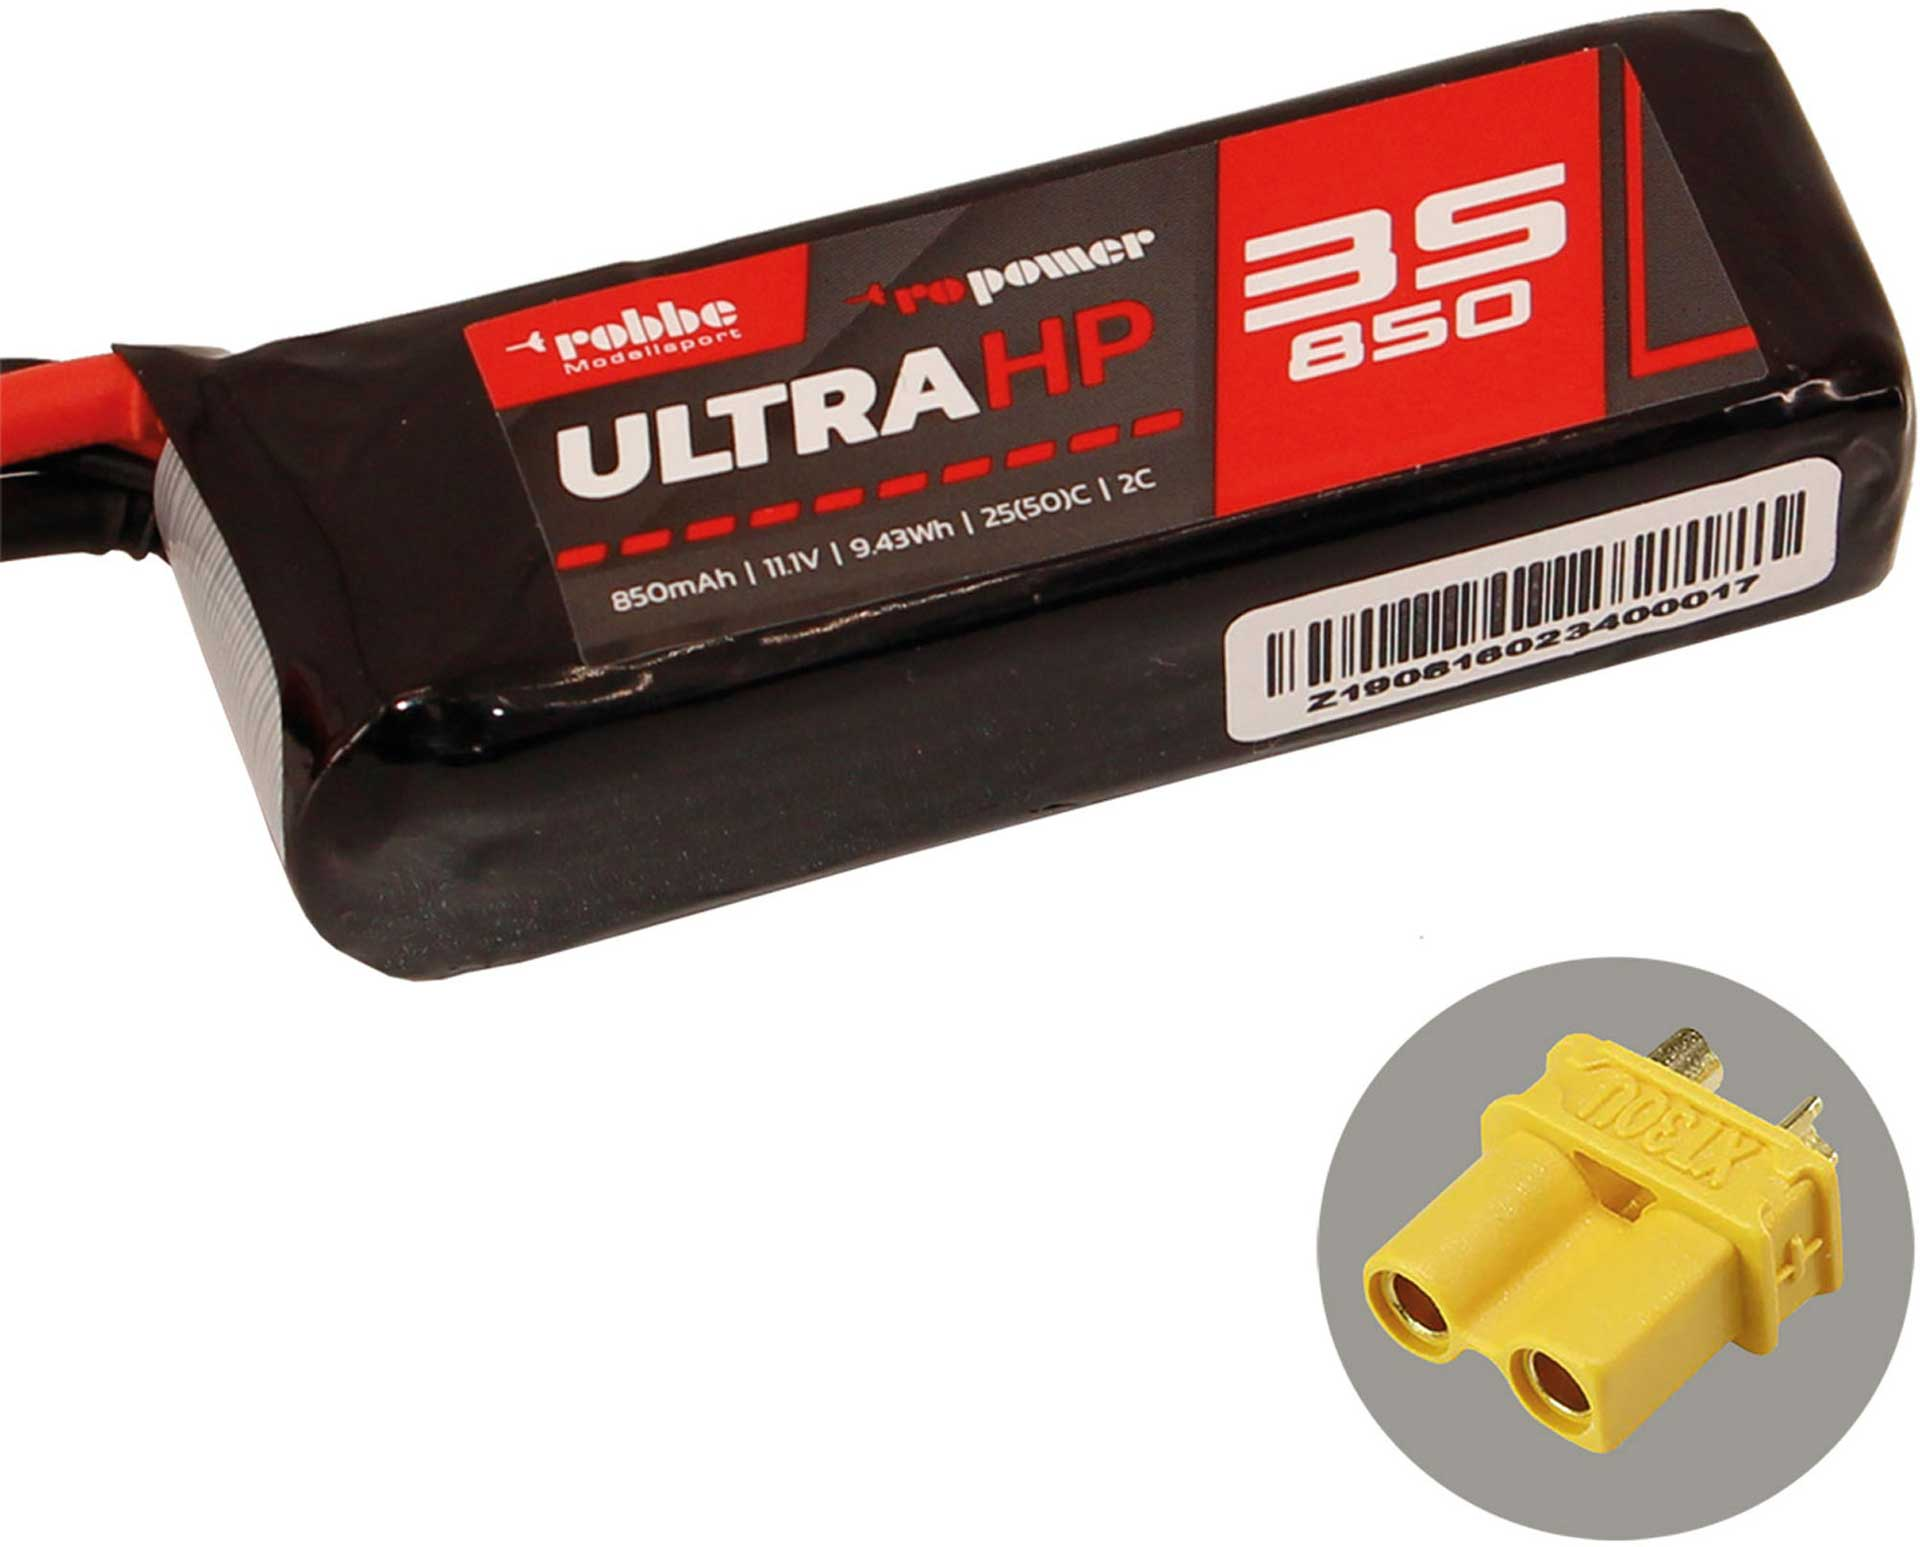 ROBBE RO-POWER ULTRA HP 850MAH 11,1 VOLT 3S 25(50)C LIPO AKKU